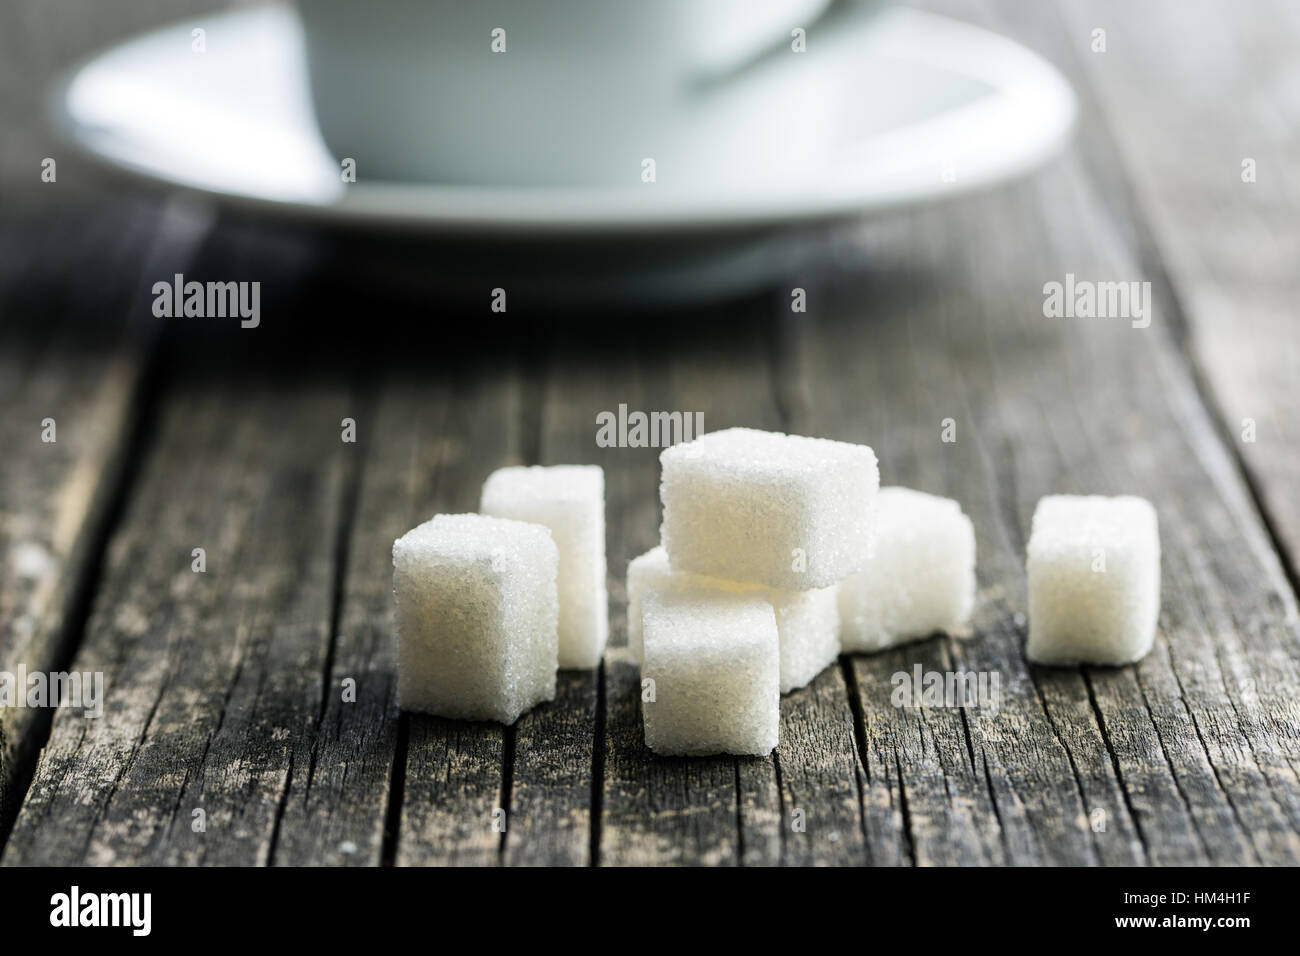 White sugar cubes on old wooden table. - Stock Image